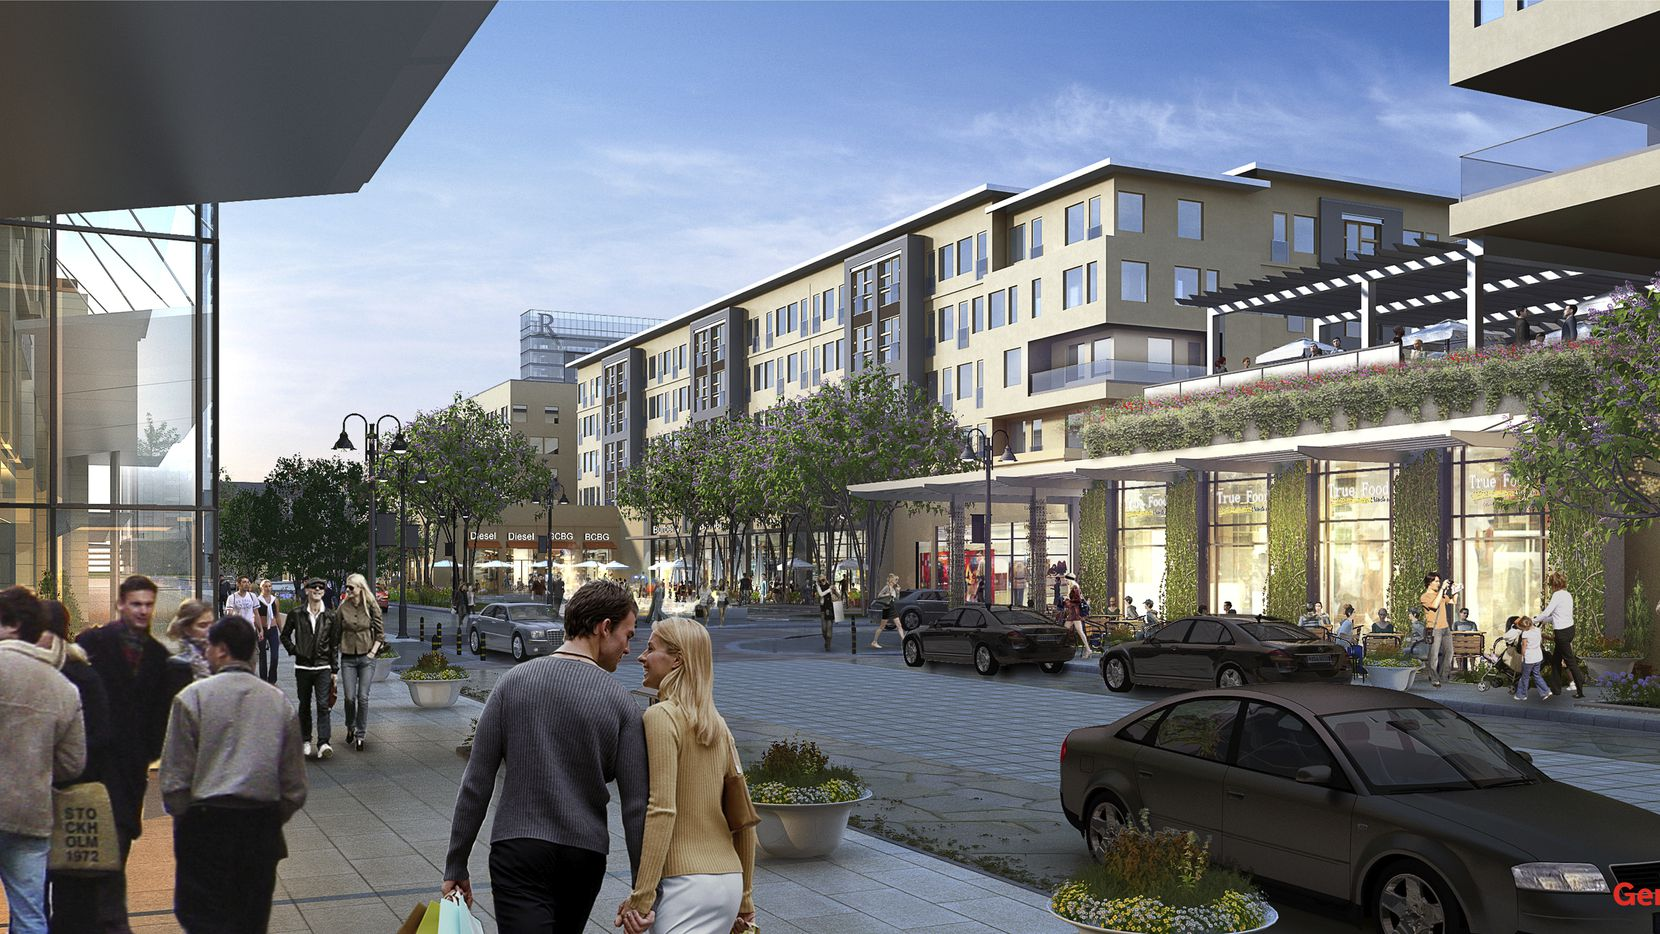 Work will start in February on the first phase of the $2 billion Legacy West mixed-use development in Plano. 11072014xBRIEFING